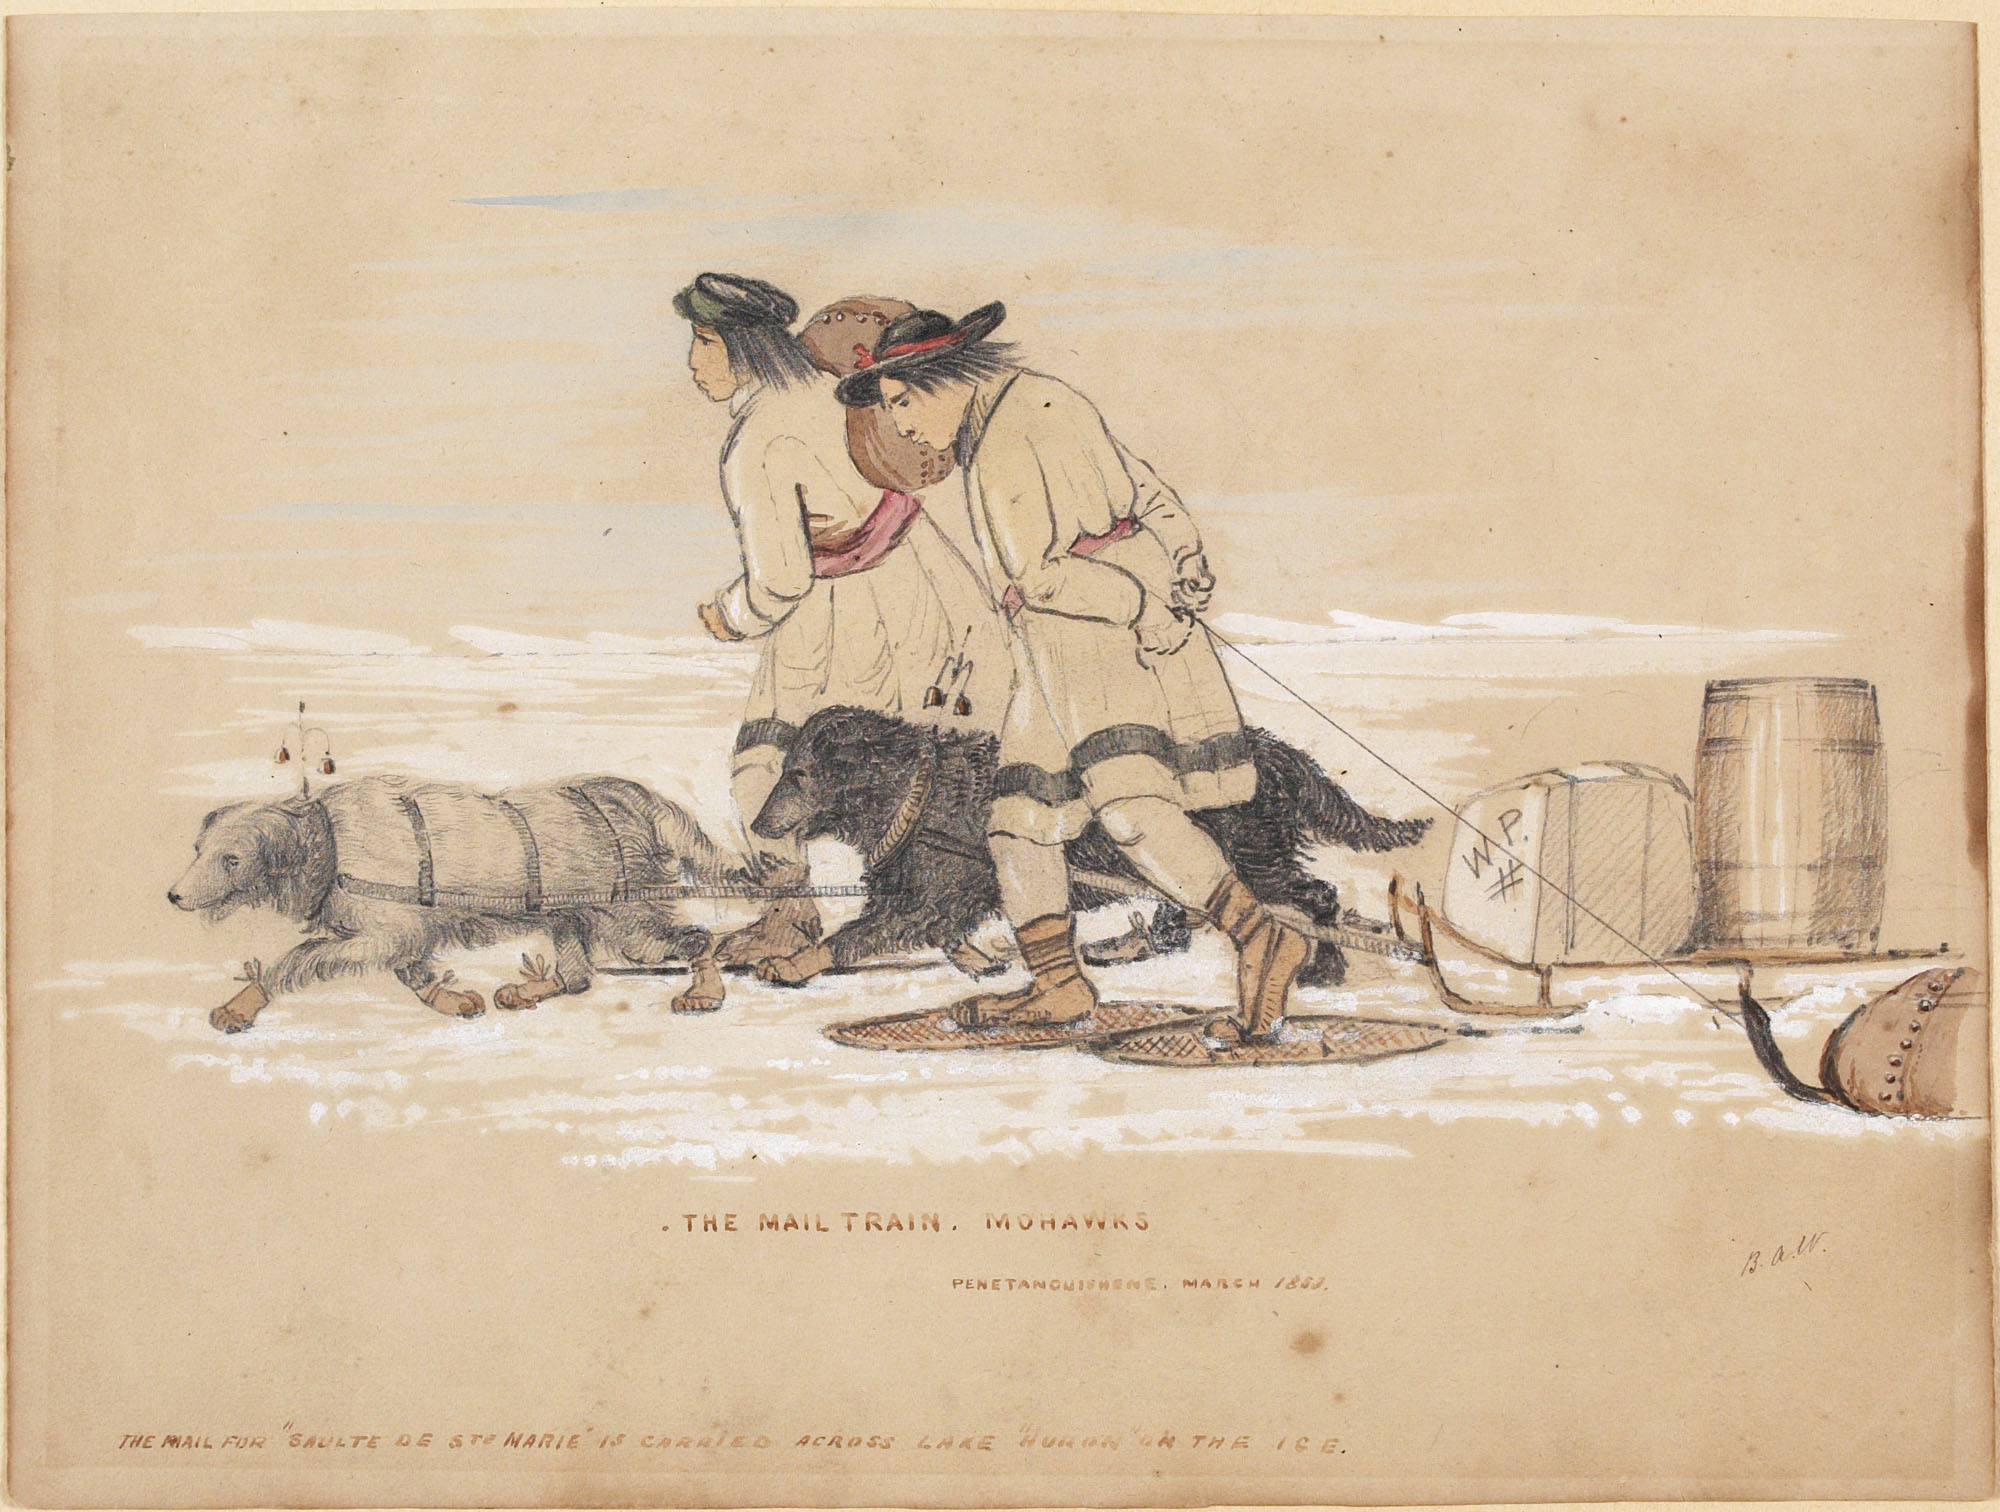 Pencil, watercolour and gouache on wove paper of two dogs and two figures snowshoeing over ice while pulling  sleds loaded with barrels.